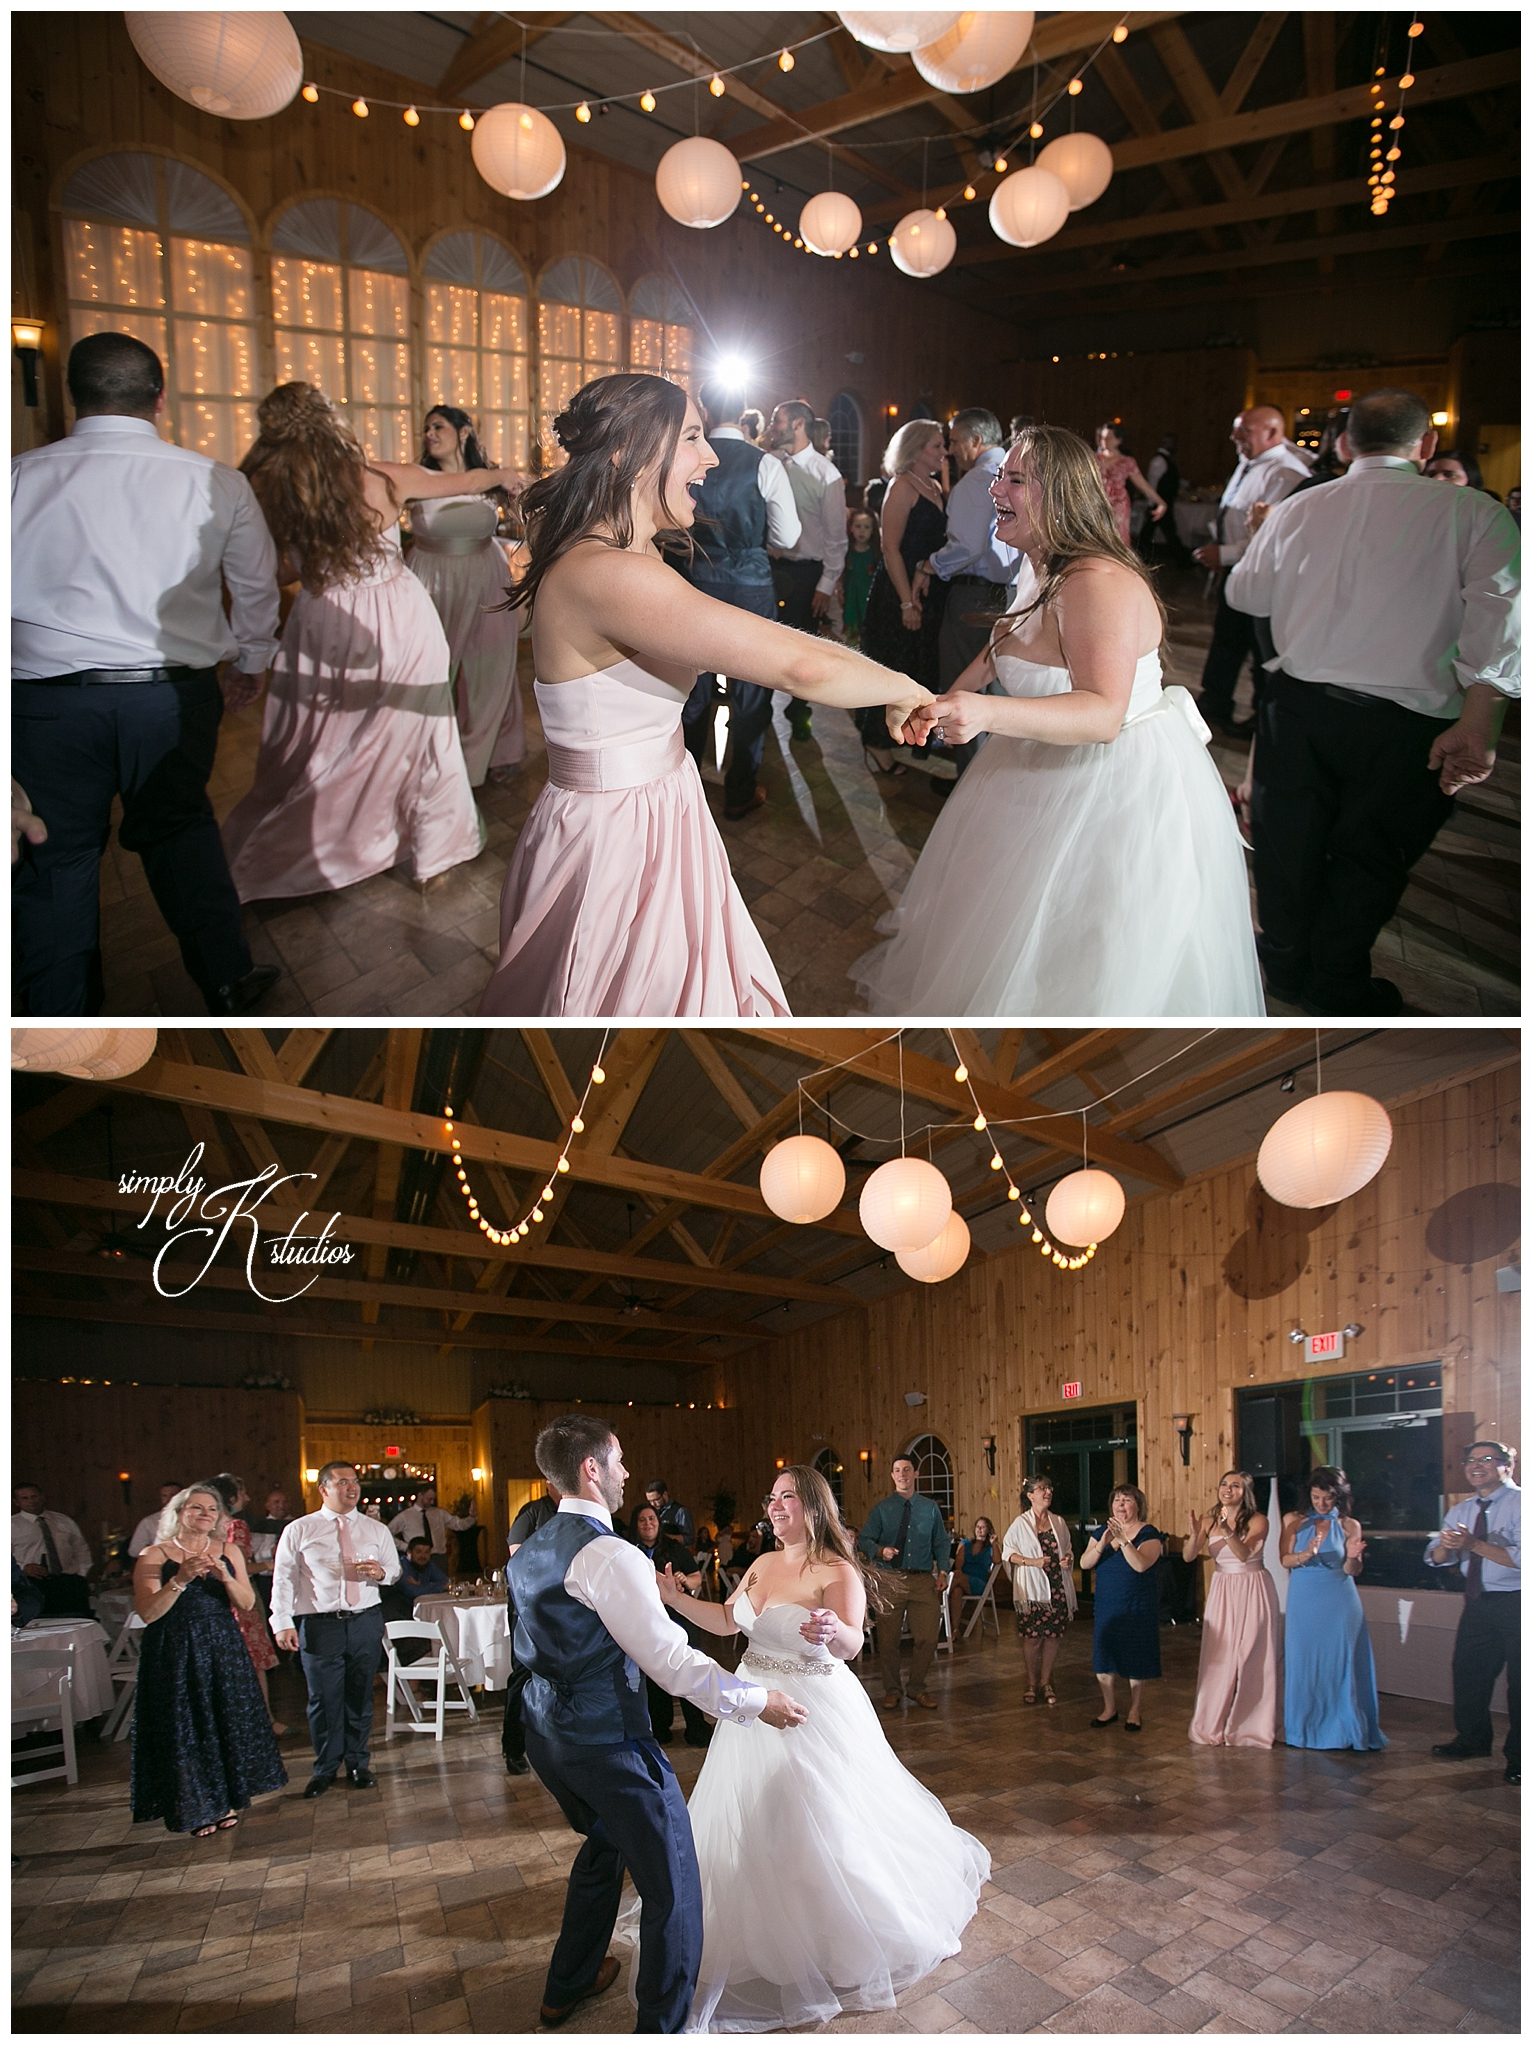 Wedding DJ Rudy C Productions.jpg